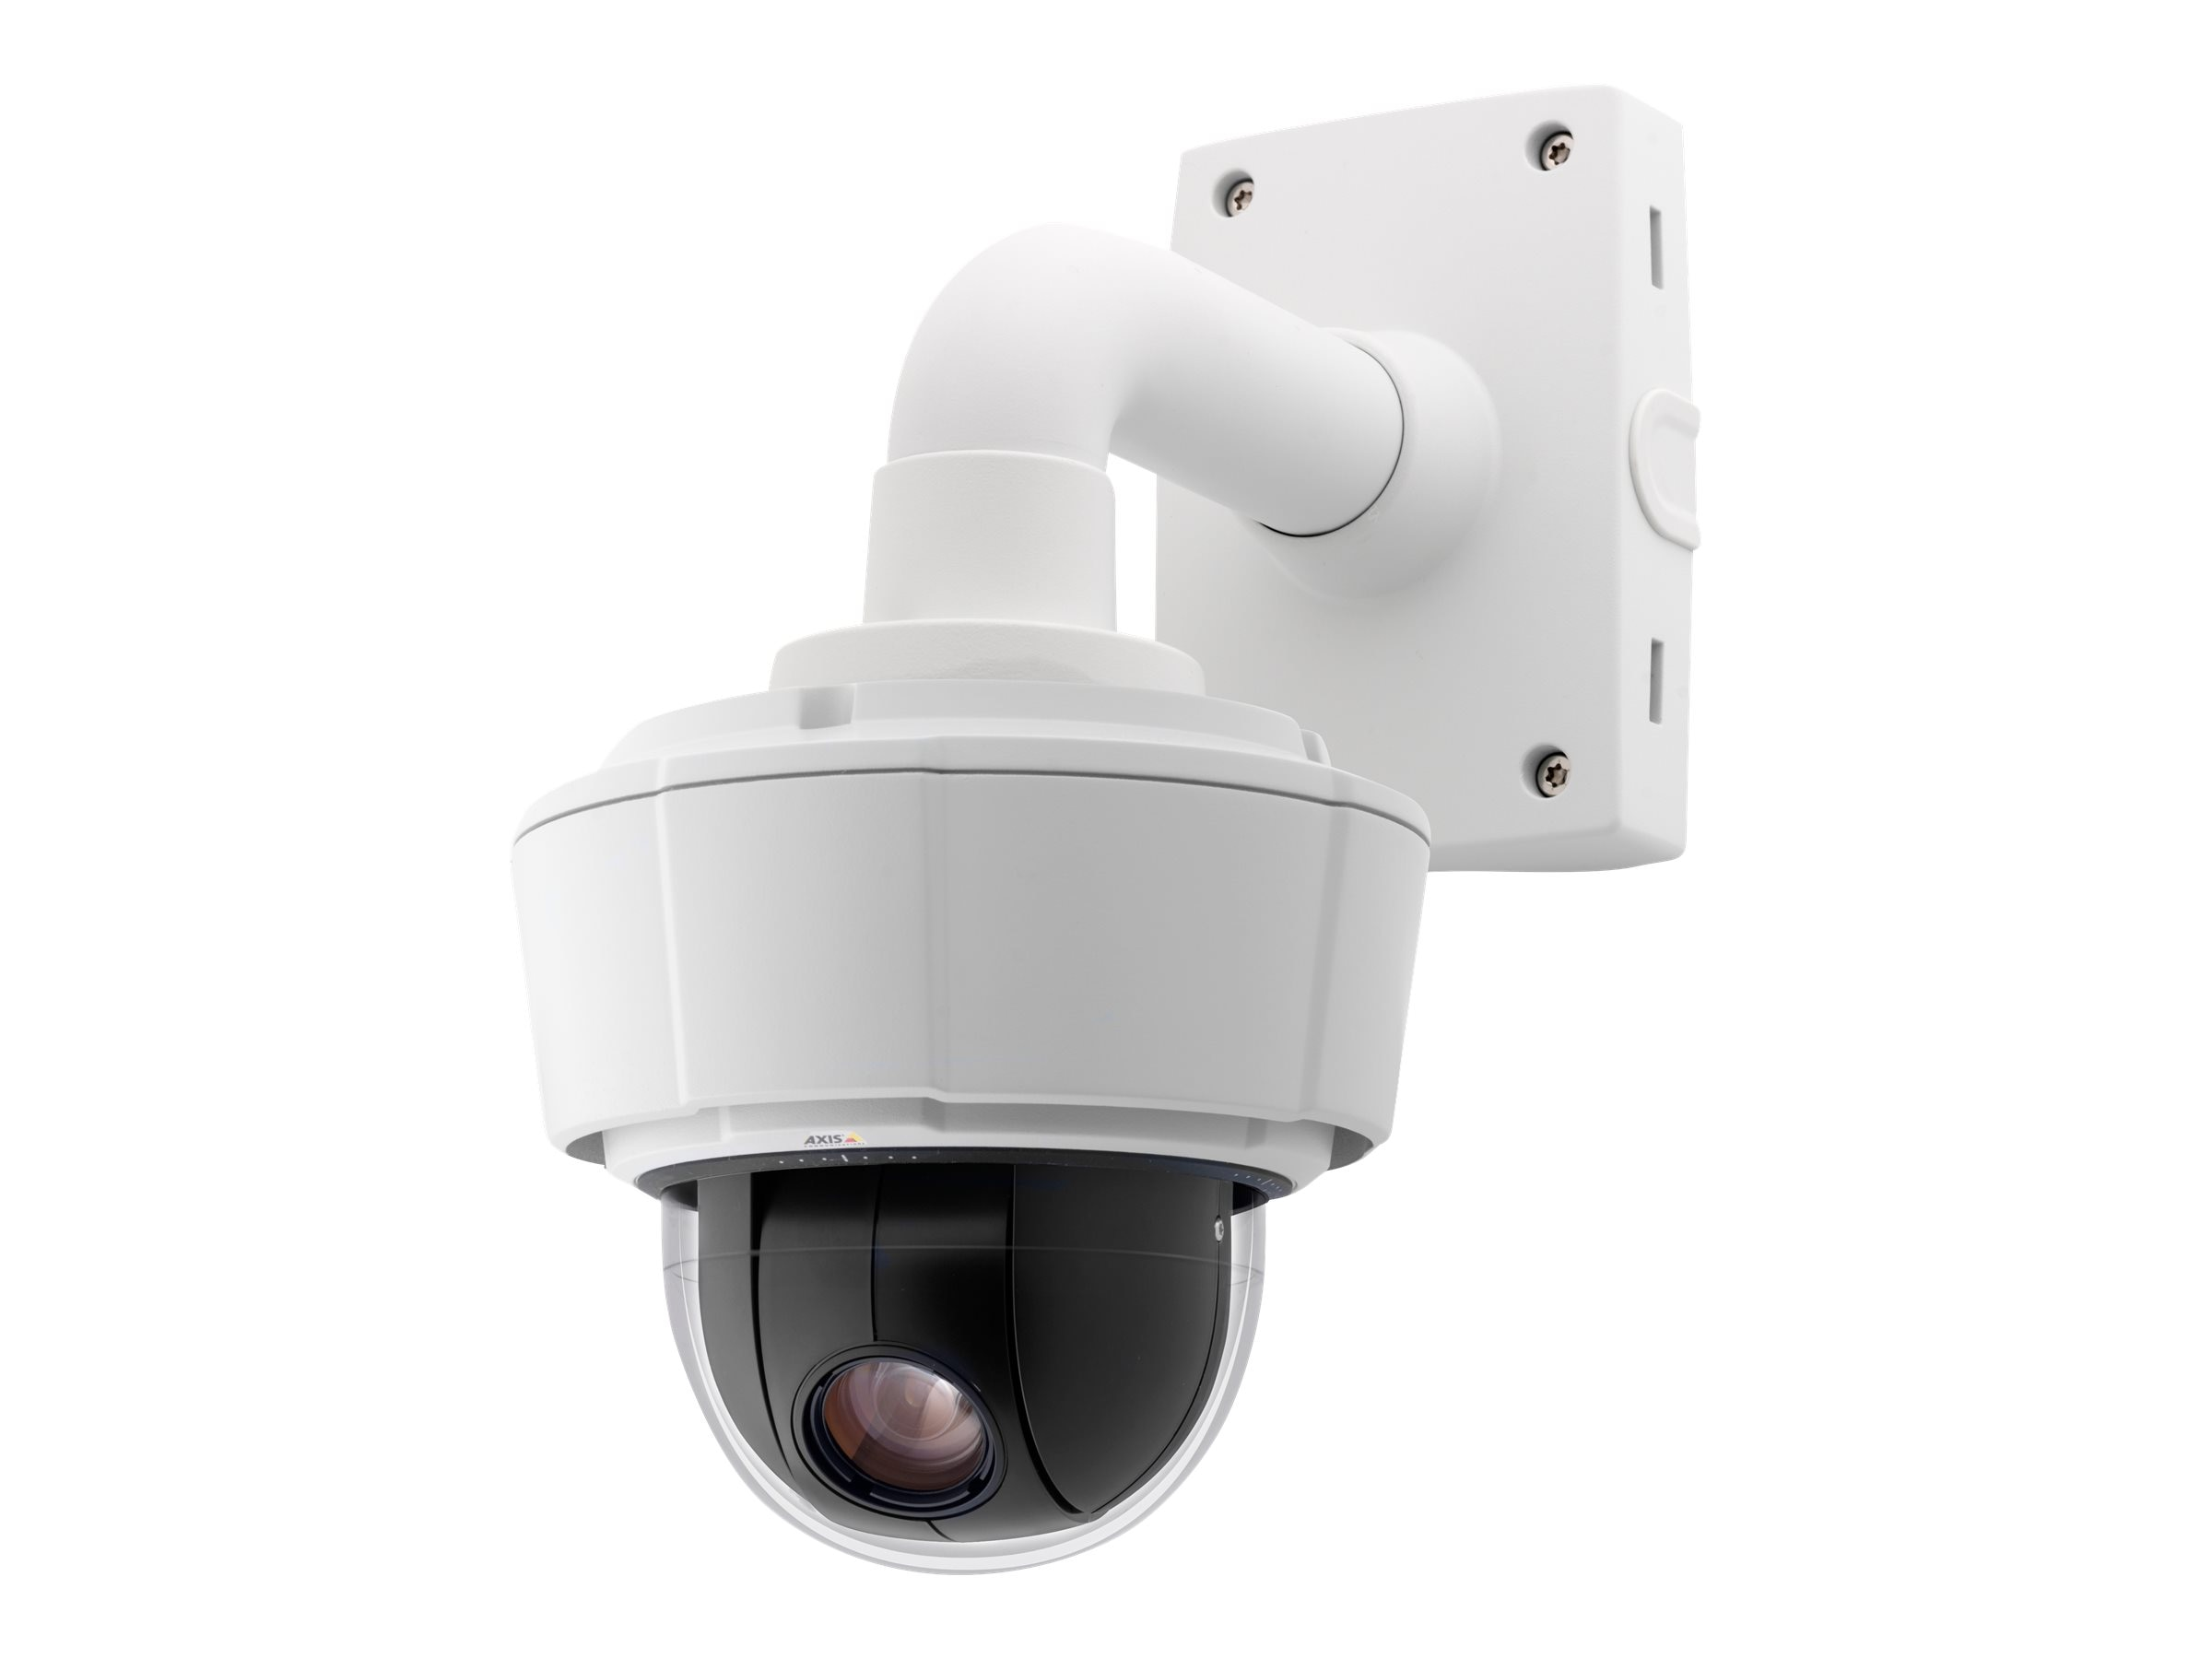 Axis P5532-E PTZ Dome Network Camera, 0312-004, 12078121, Cameras - Security